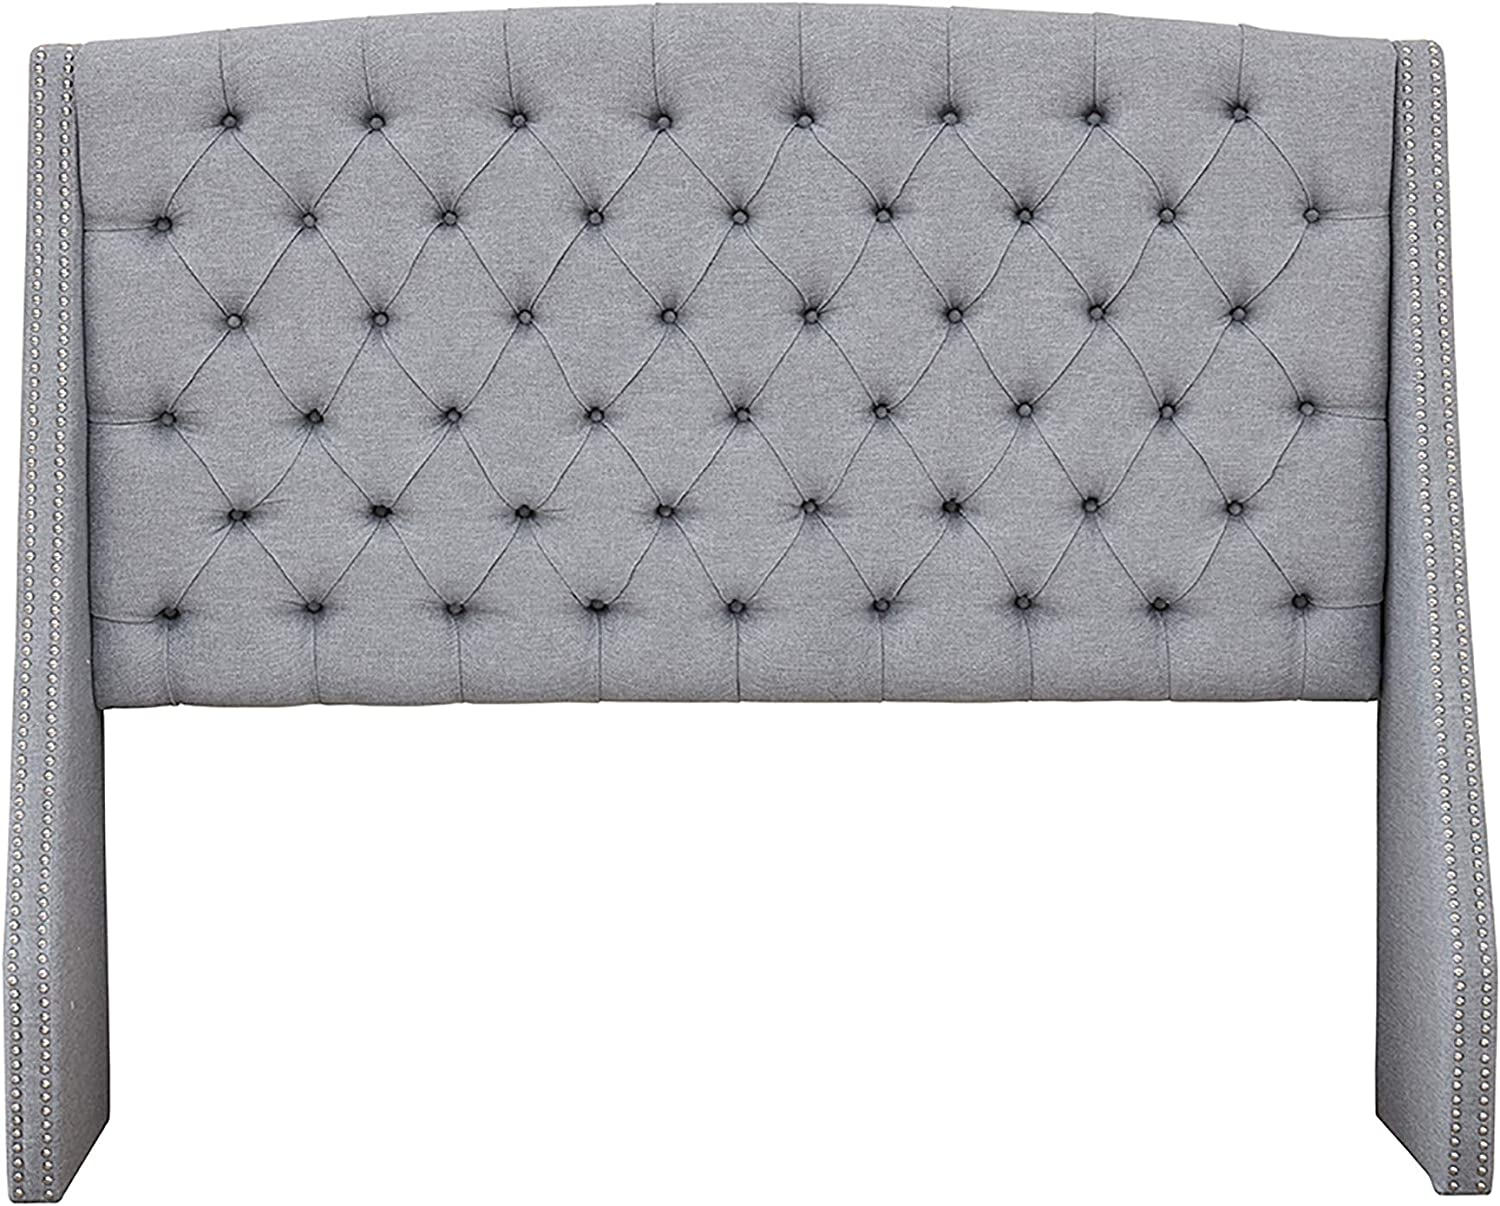 Madison Park Harper Upholstered Nail Head Trim Wingback Button Tufted Headboard Modern Contemporary Metal Legs Padded Bedroom D cor Accent, Queen, Grey